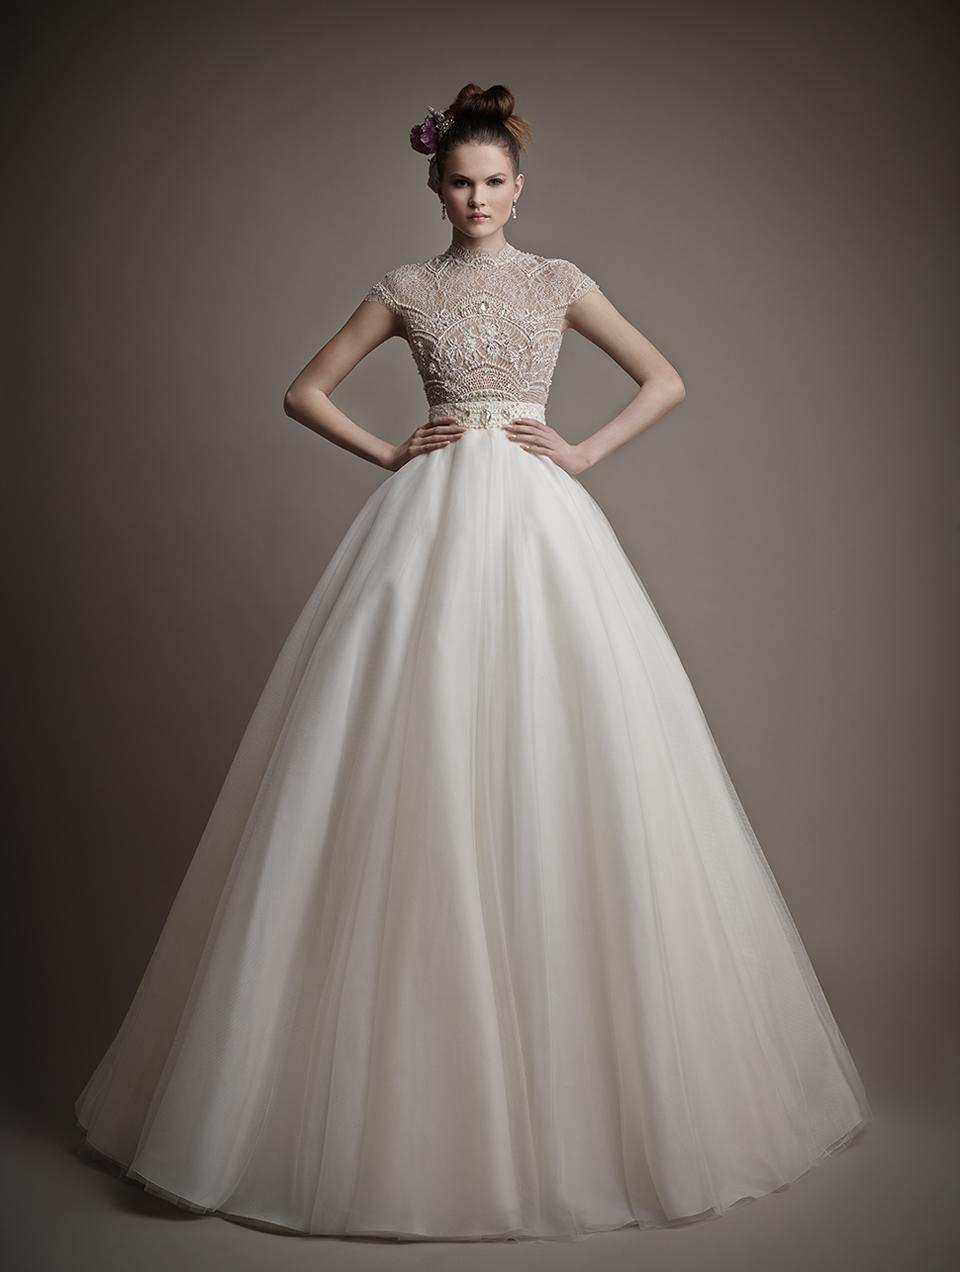 Buy Expensive Wedding Dresses Online - Wedding Guest Dresses